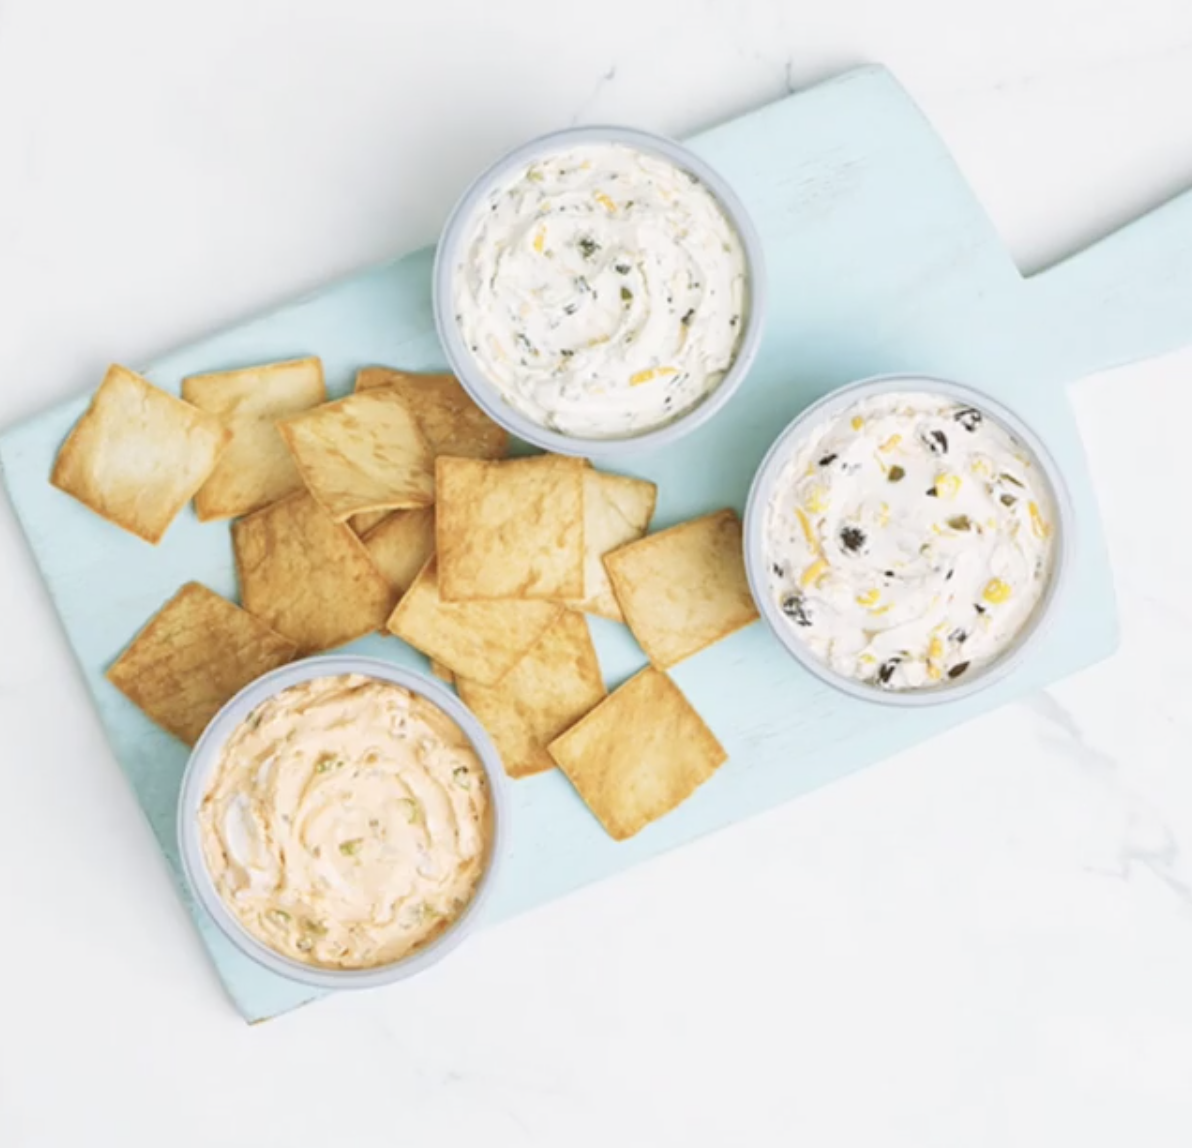 8b5061c7b90 Philadelphia Cream Cheese Introduces New Dips - Philly Cream Cheese Dips  Are Now In Stores